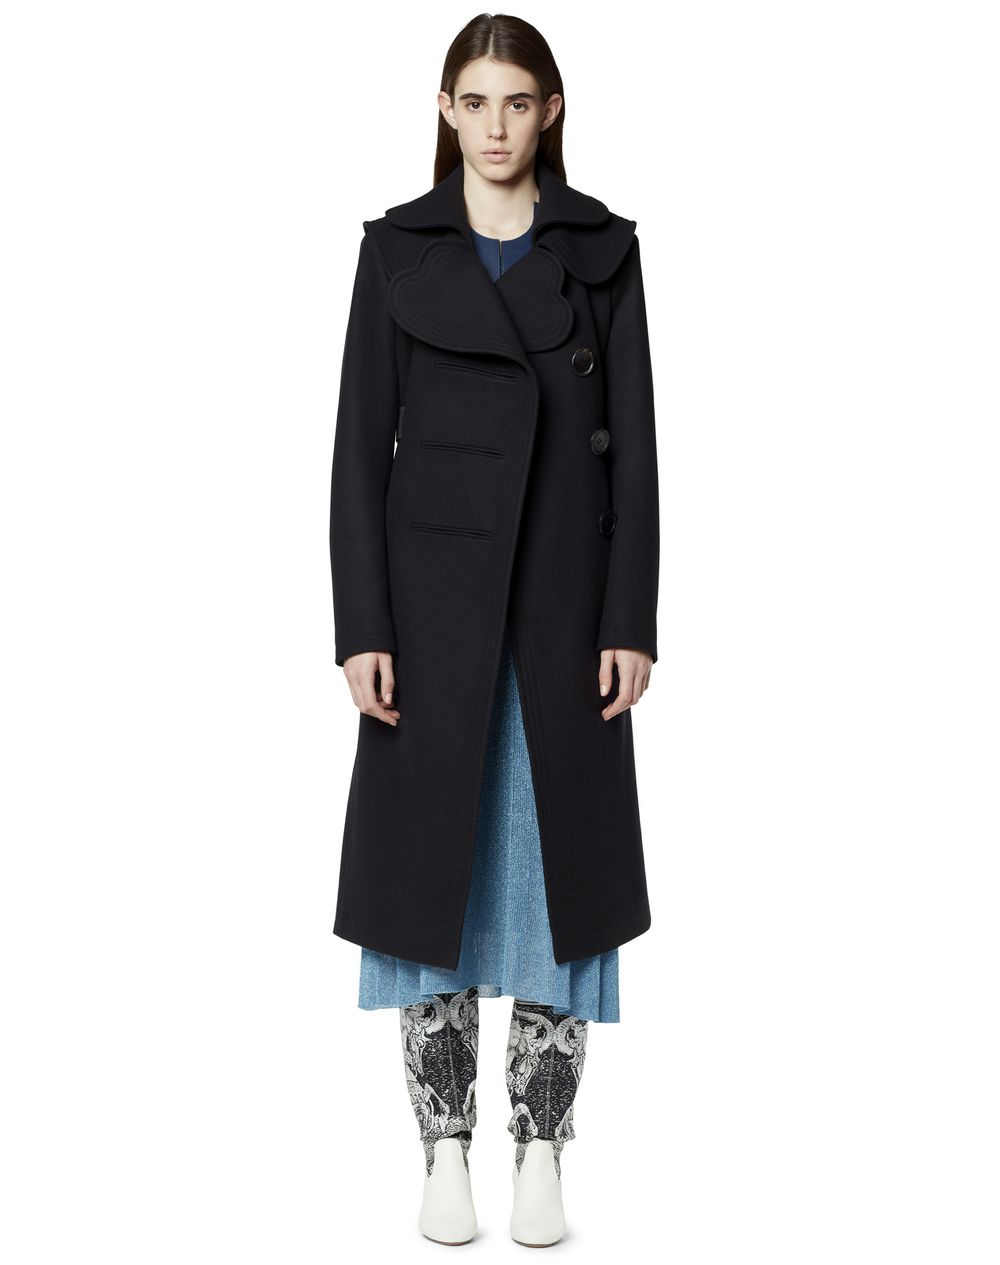 LONG WOOL COAT WITH HEART-SHAPED COLLAR - Lanvin